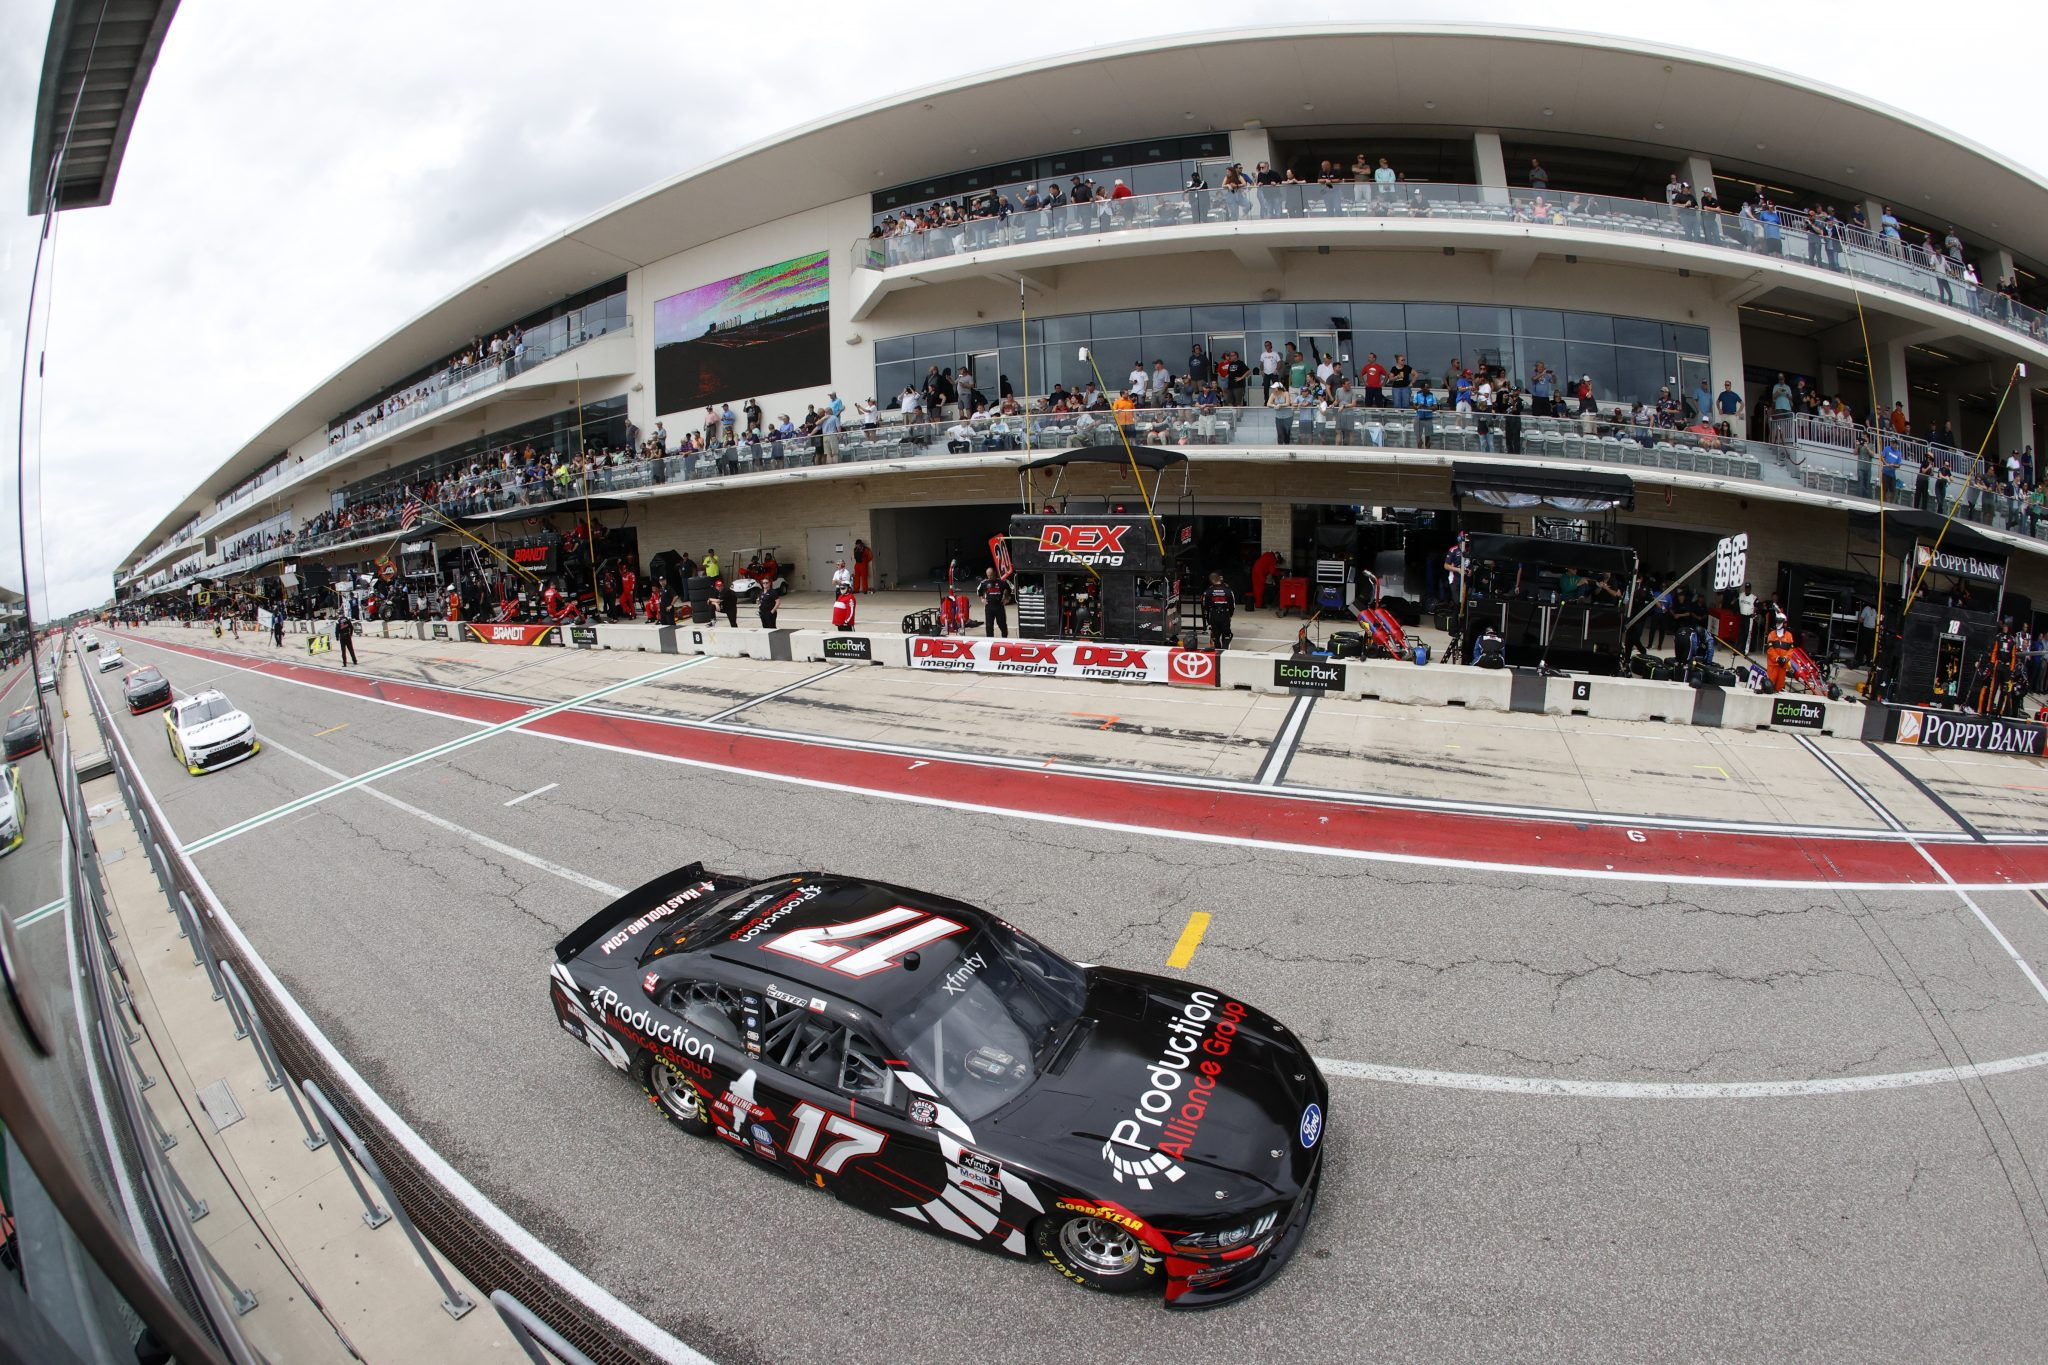 AUSTIN, TEXAS - MAY 22: Cole Custer, driver of the #17 Production Alliance Group Ford, drives during the NASCAR Xfinity Series Pit Boss 250 at Circuit of The Americas on May 22, 2021 in Austin, Texas. (Photo by Chris Graythen/Getty Images) | Getty Images